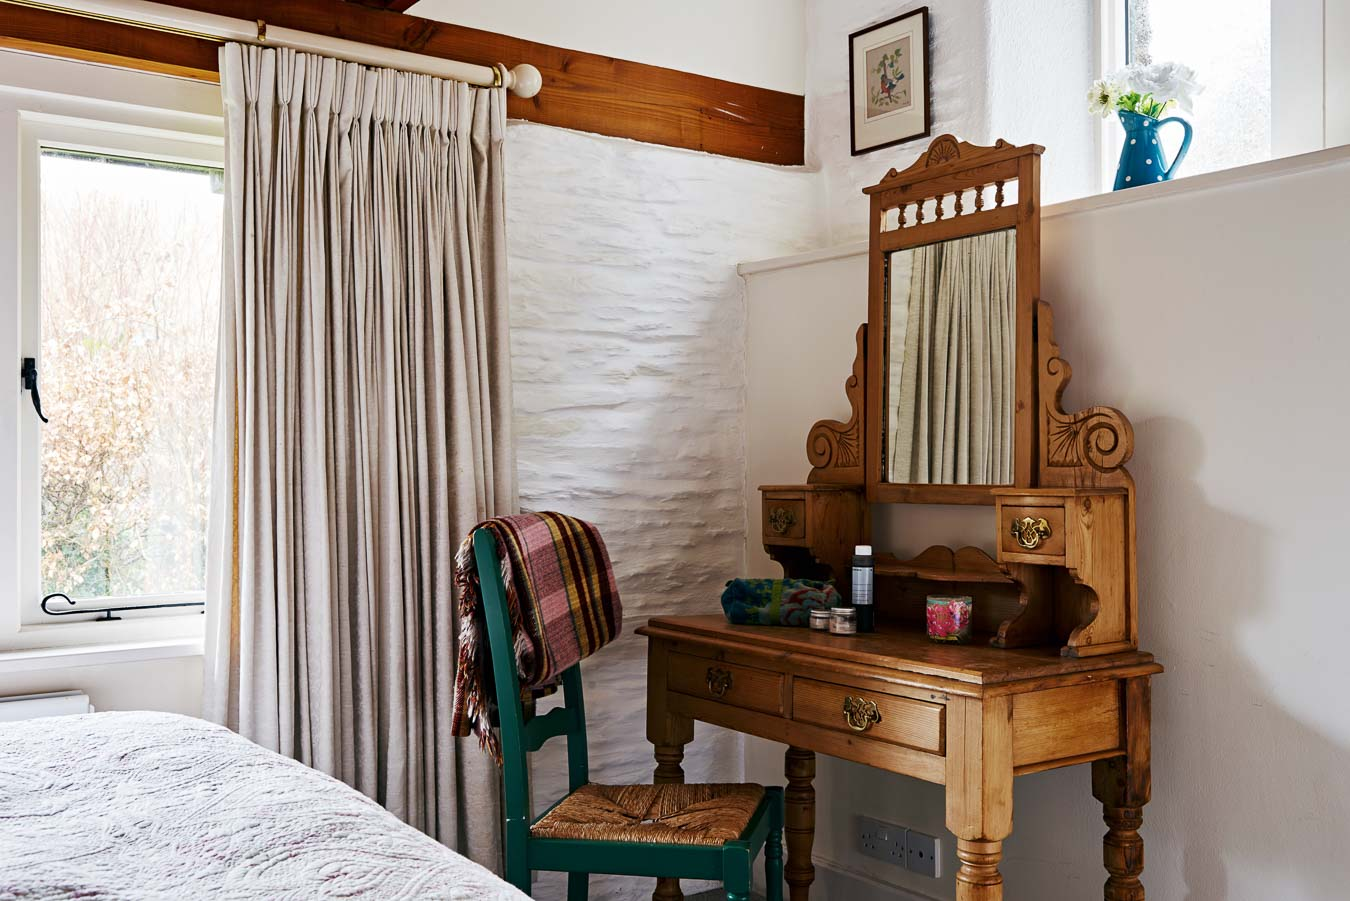 The Linhay's master bedroom dressing table and large windows looking into private garden at Flear Farm.